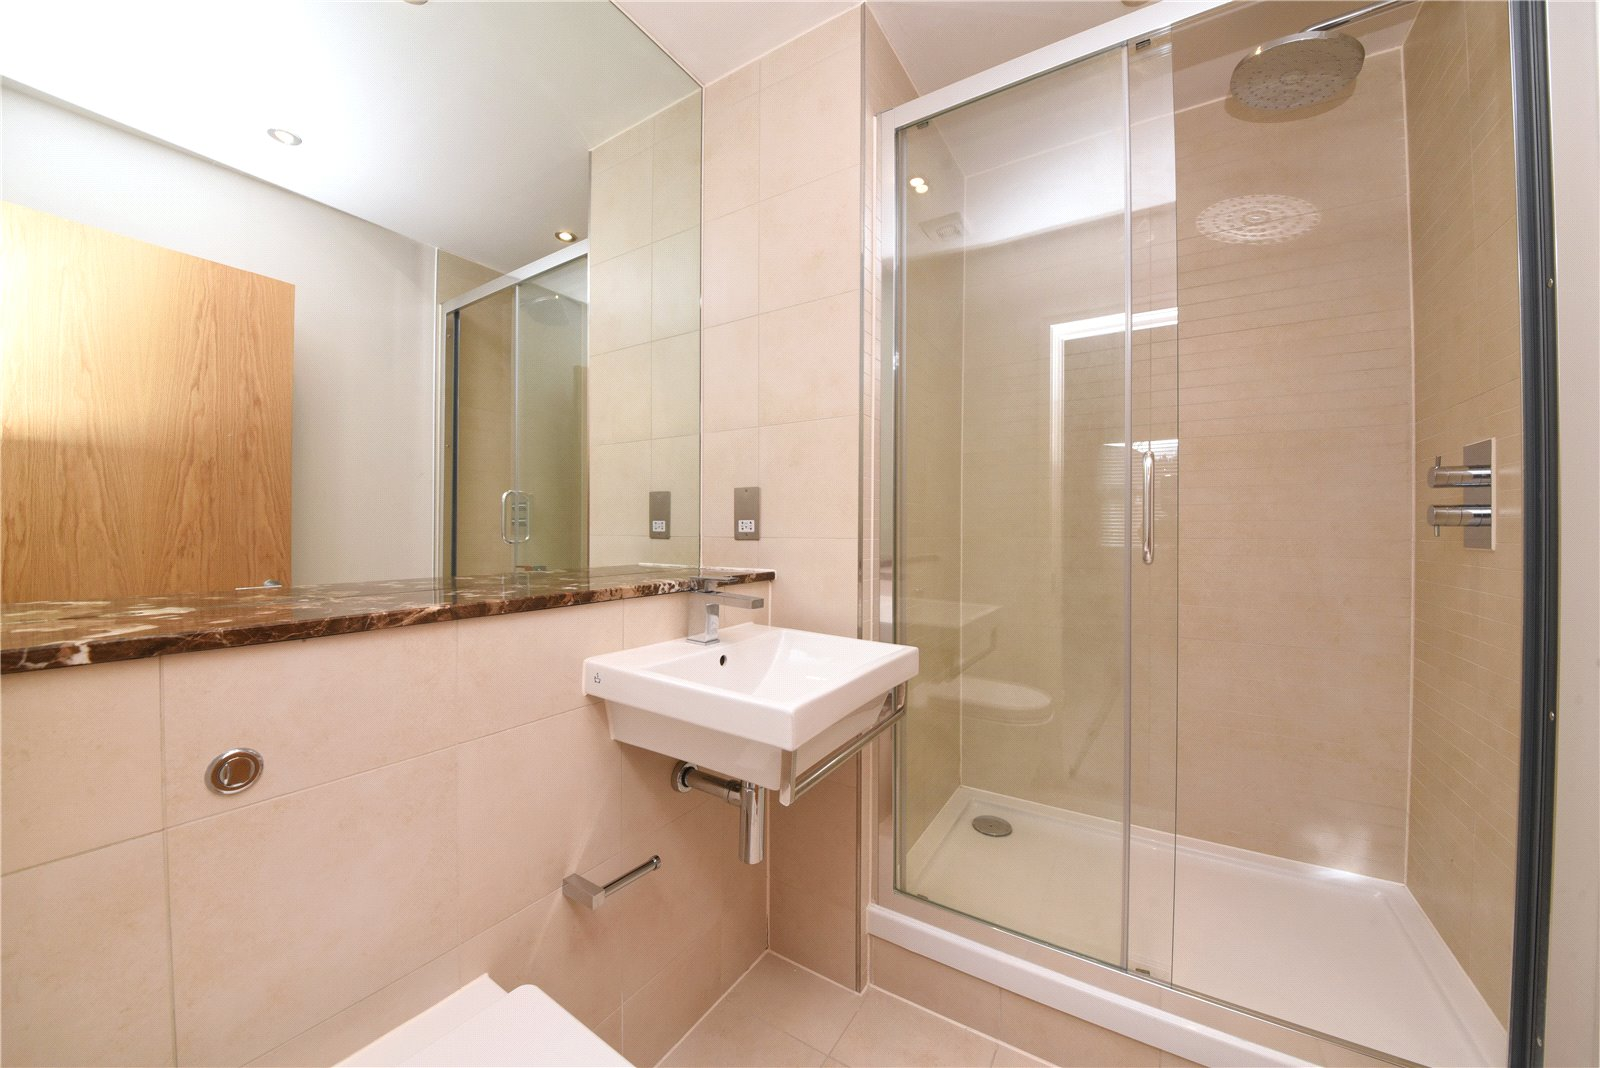 2 bed apartment for sale in Mill Hill East, NW7 1ND  - Property Image 2